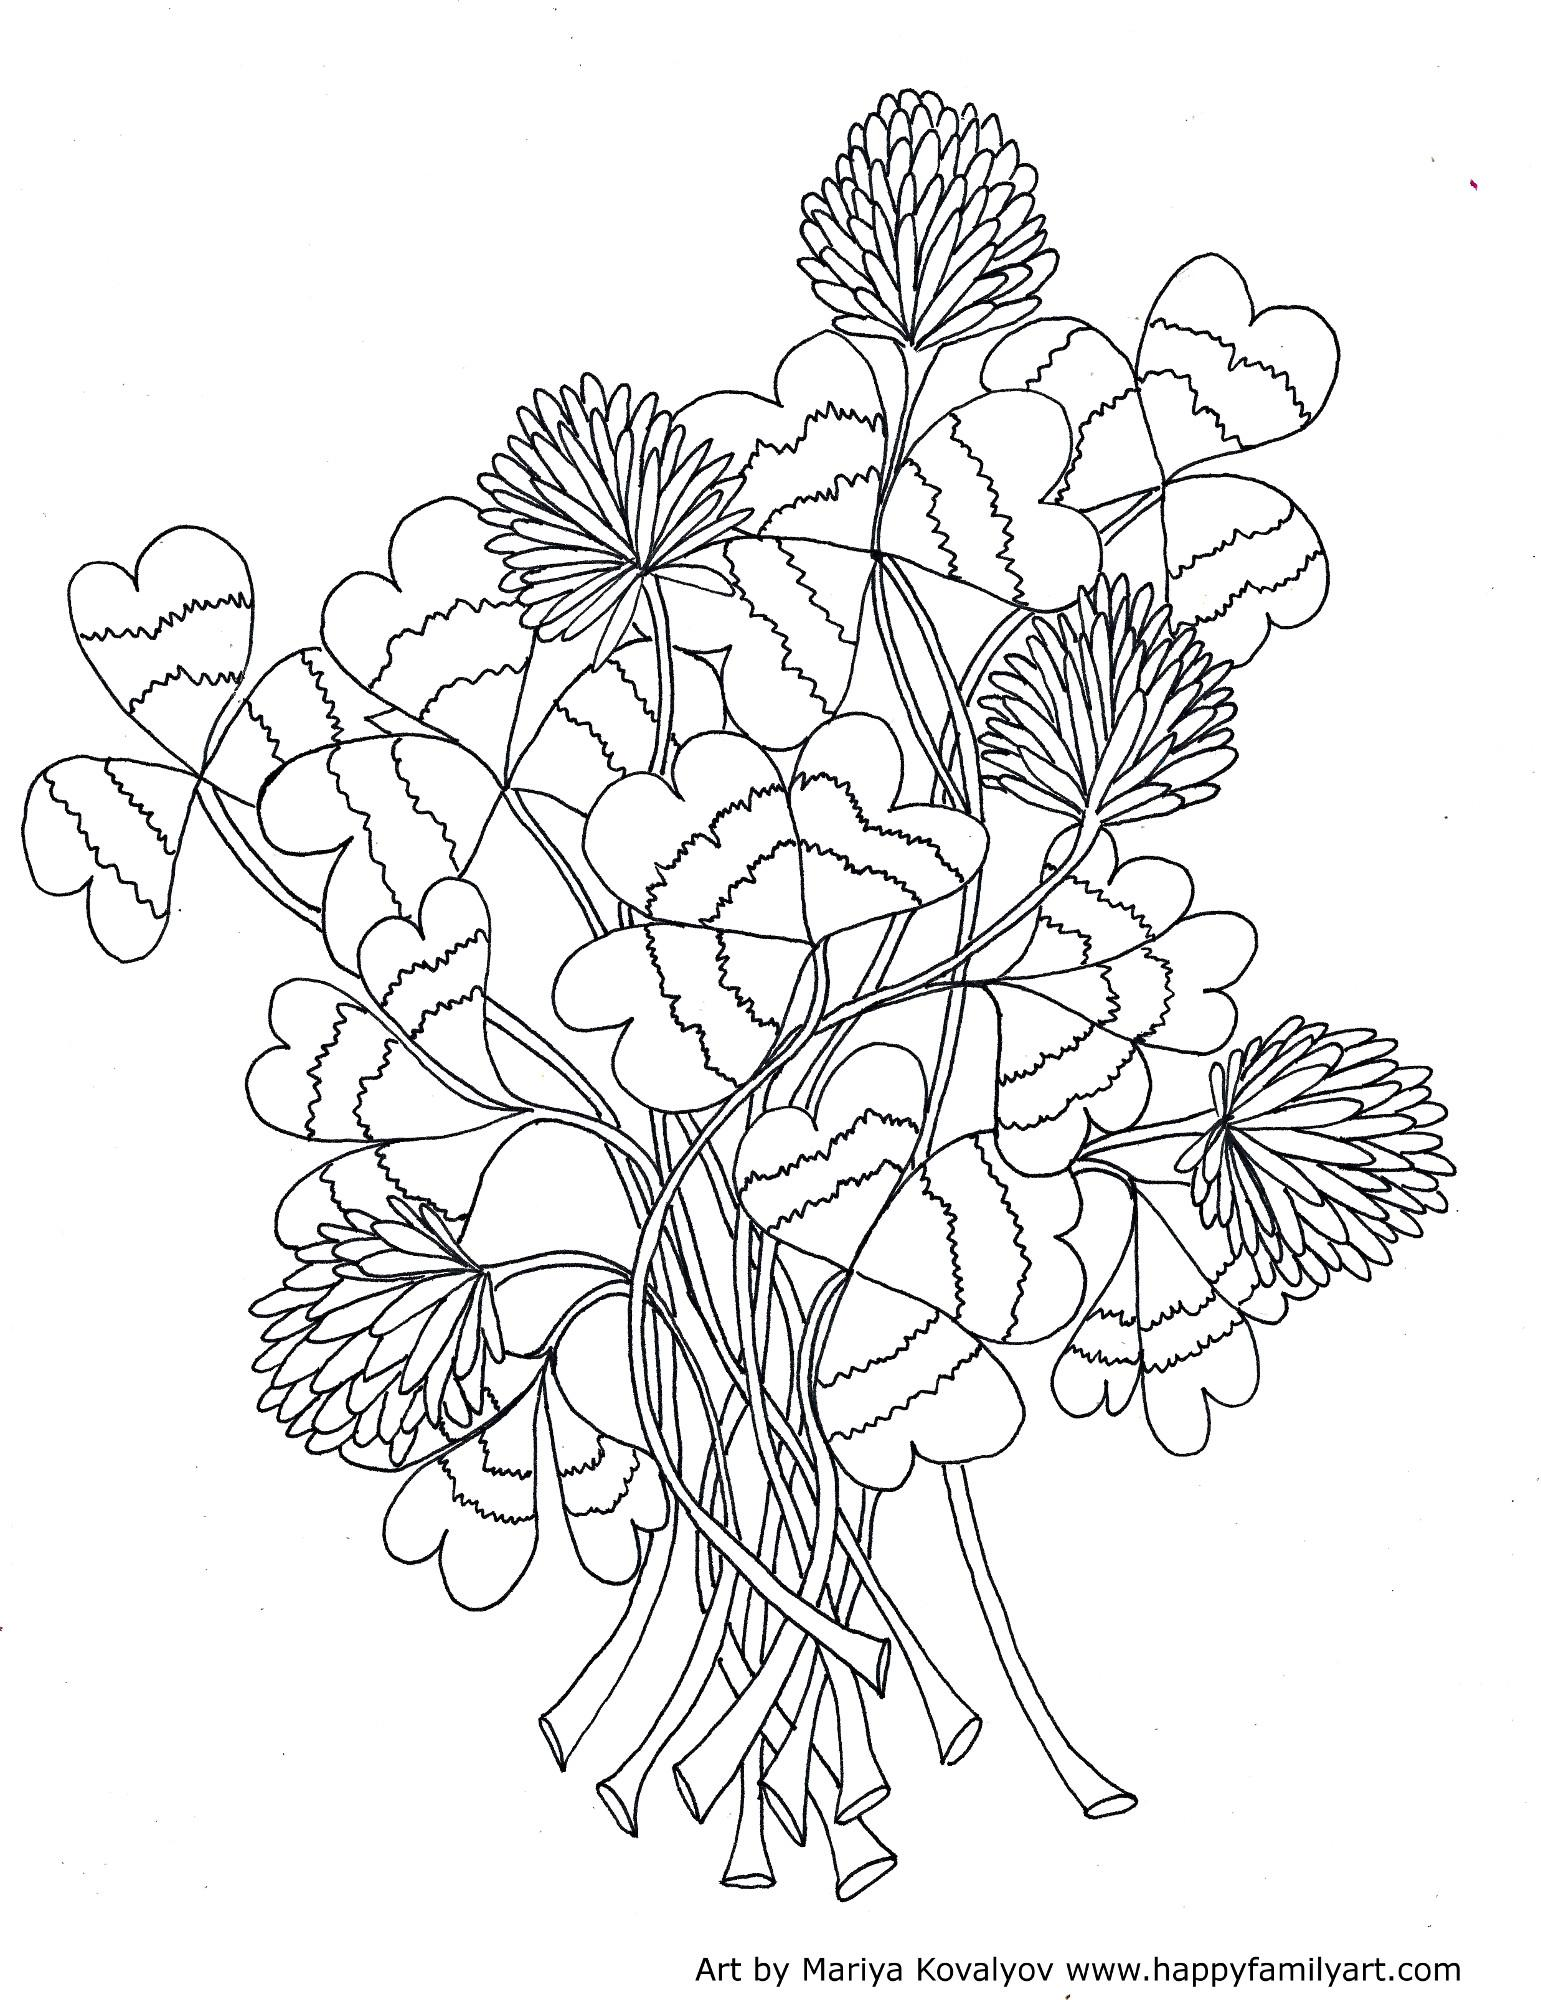 Original And Fun Coloring Pages - Line Art (#744754) - HD ...